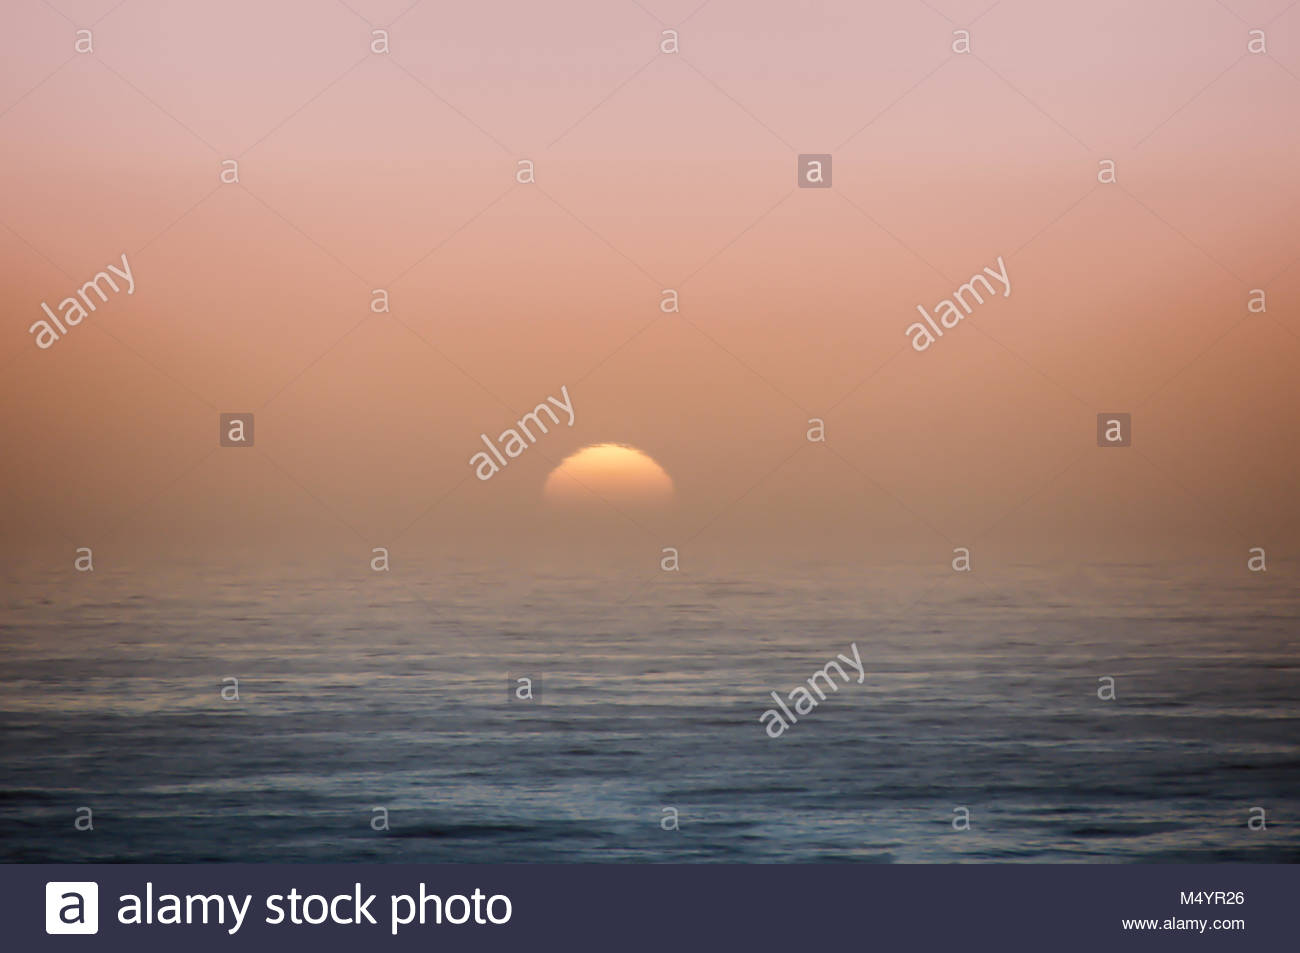 Pacific Ocean Sunset. - Stock Image